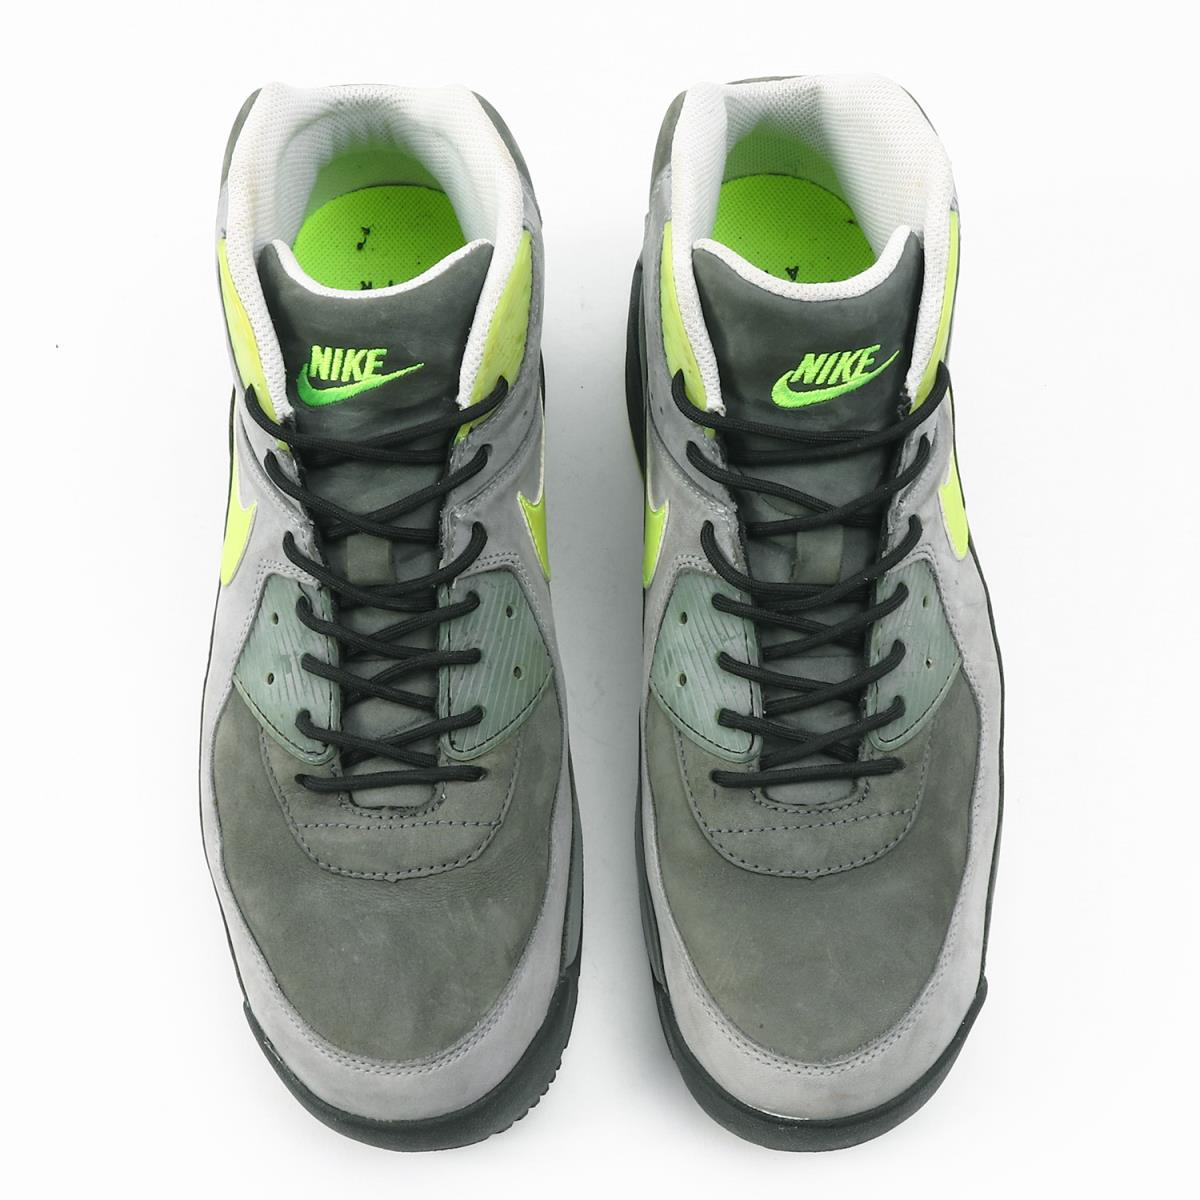 7febe34f568c6 BEEGLE by Boo-Bee: NIKE (Nike) Japanese non-release MAX 90 BOOT ...